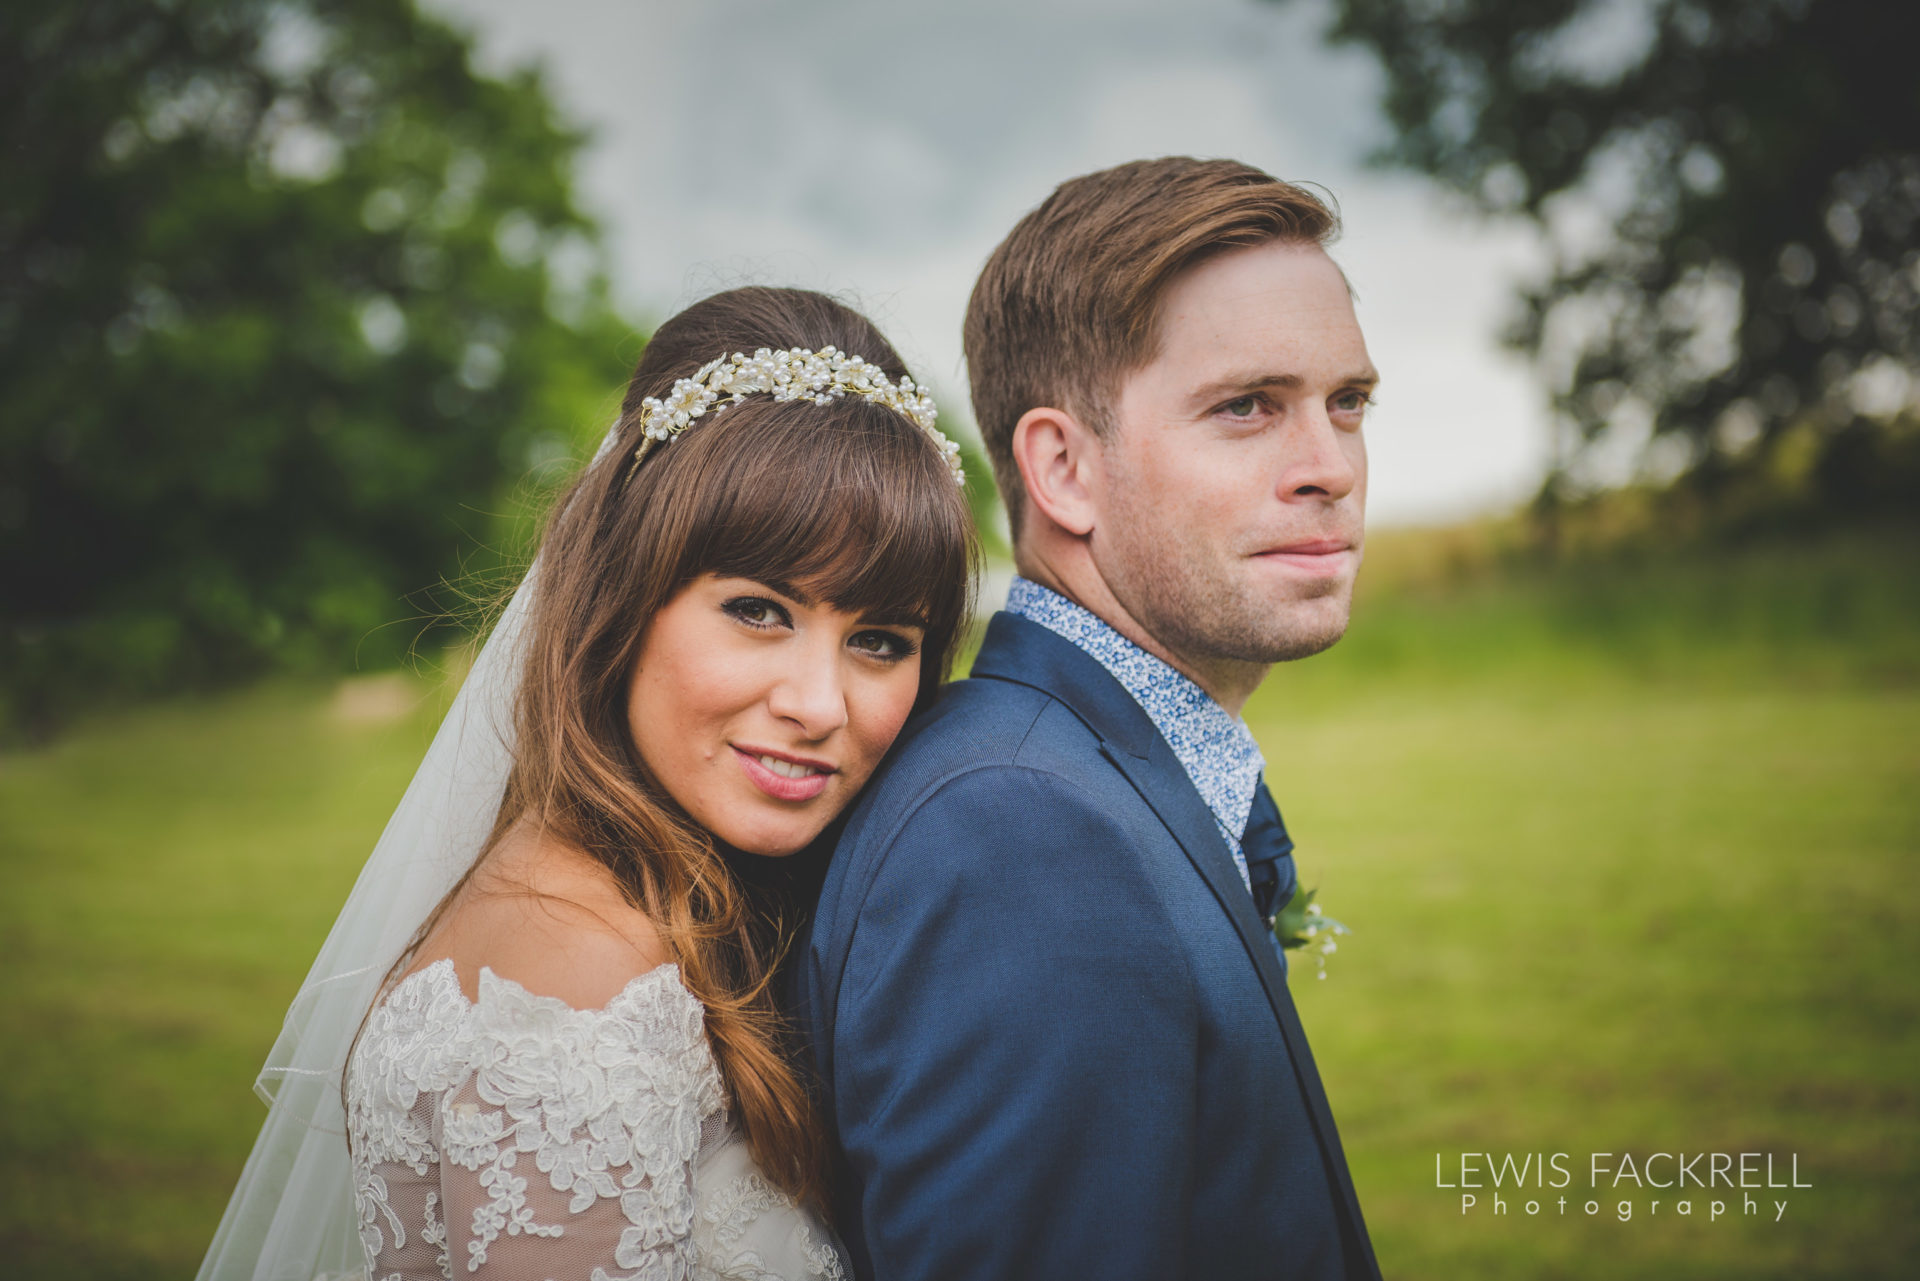 Lewis-Fackrell-Photography-Wedding-Photographer-Cardiff-Swansea-Bristol-Newport-Pre-wedding-photoshoot-cerian-dan-canada-lake-lodge-llantrisant--62